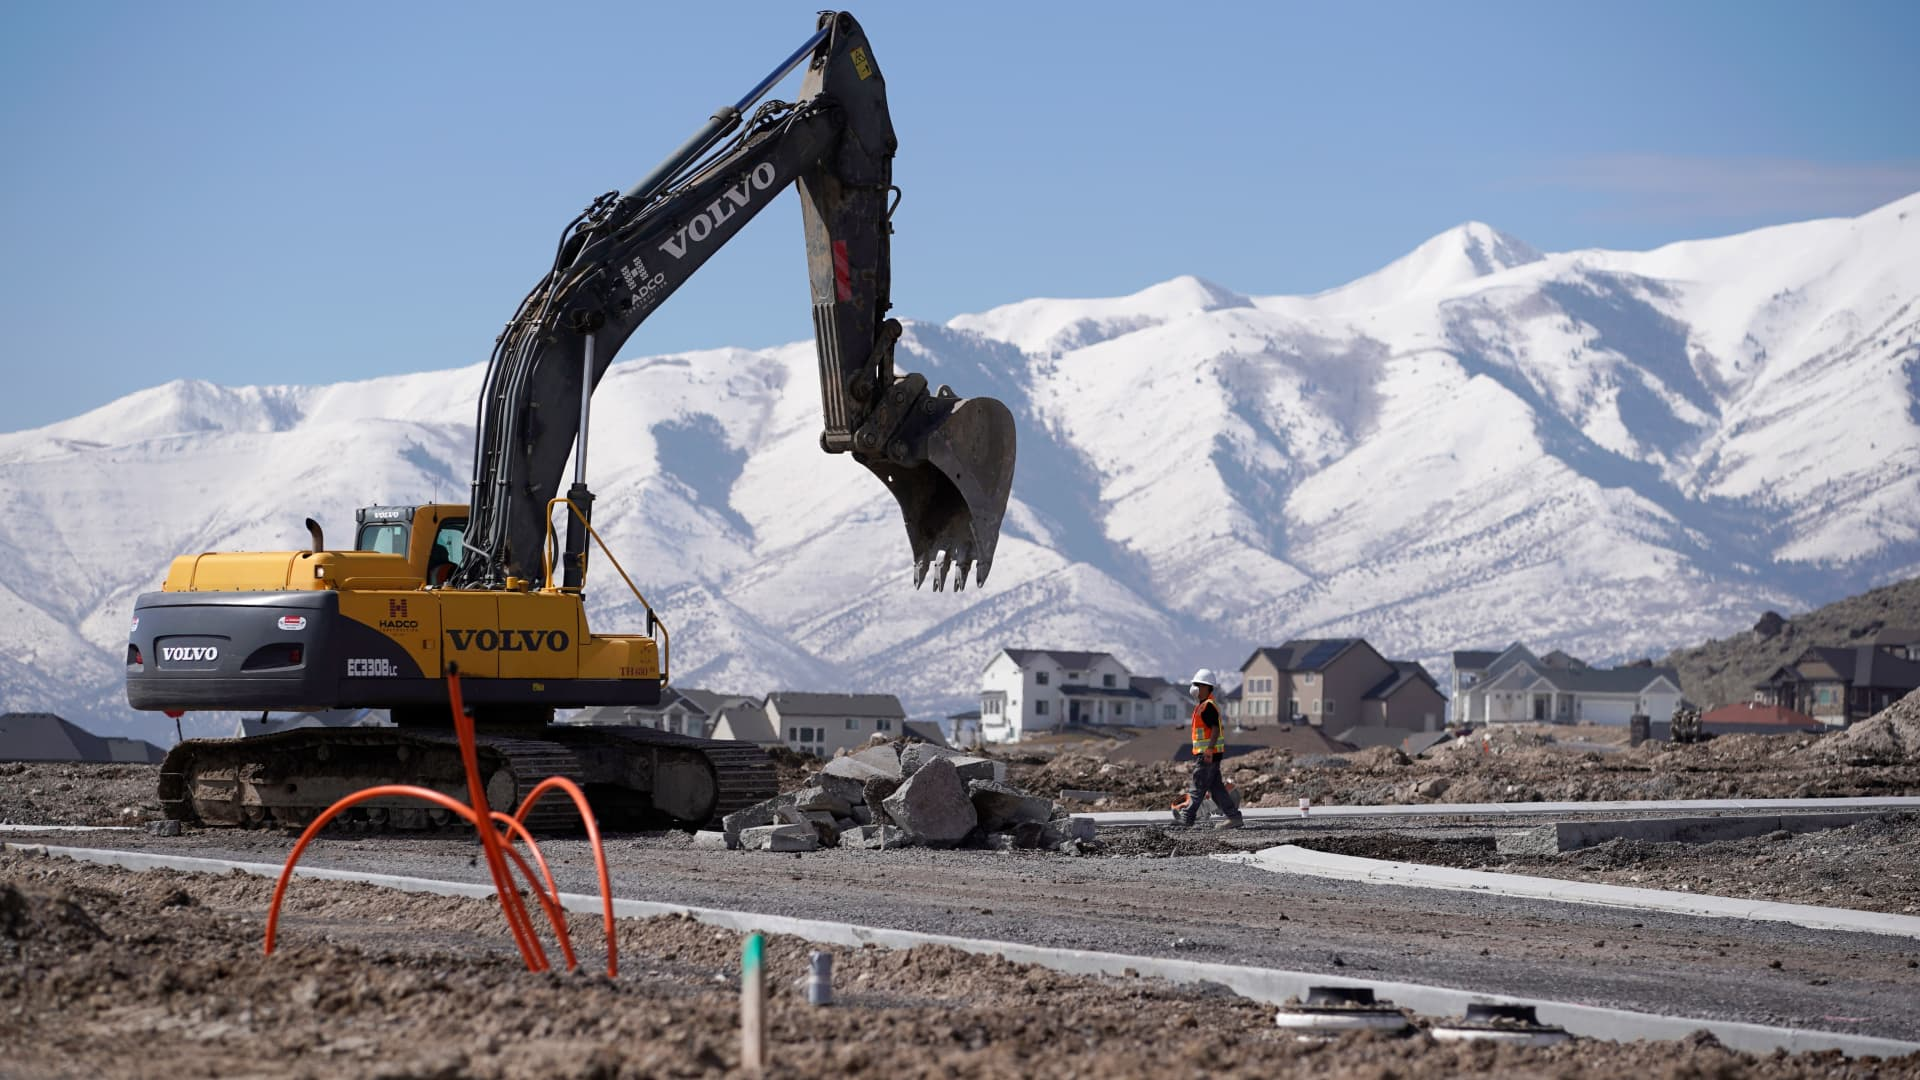 A worker uses a Volvo AB excavator to build a road during construction in Saratoga Springs, Utah.